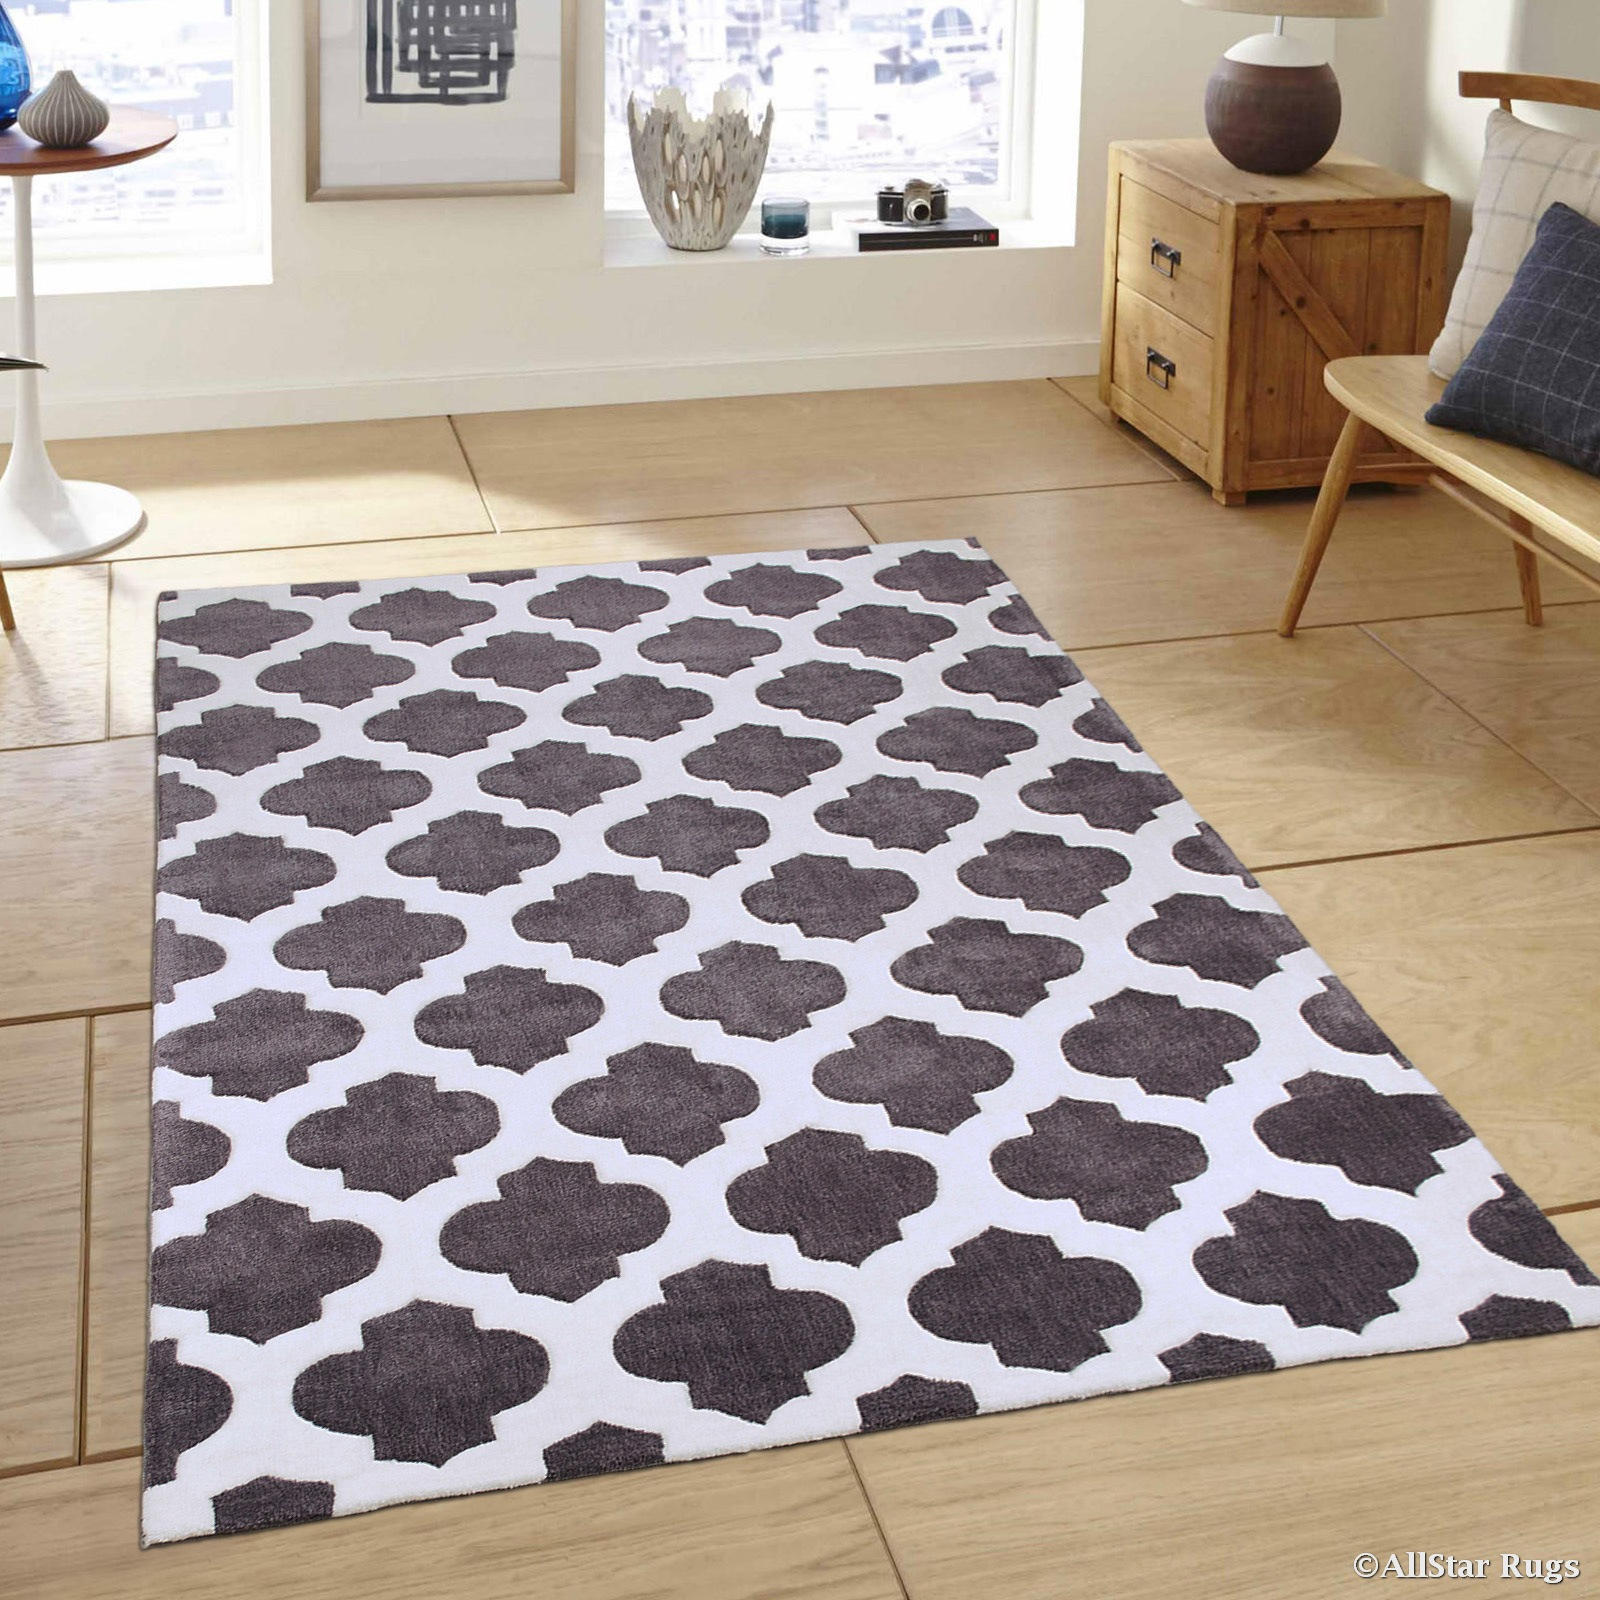 """Allstar Grey Hand Made Modern. Transitional. design Area Rug with Dimensional hand-carving highlights (4' 11"""" x 6' 11"""")"""